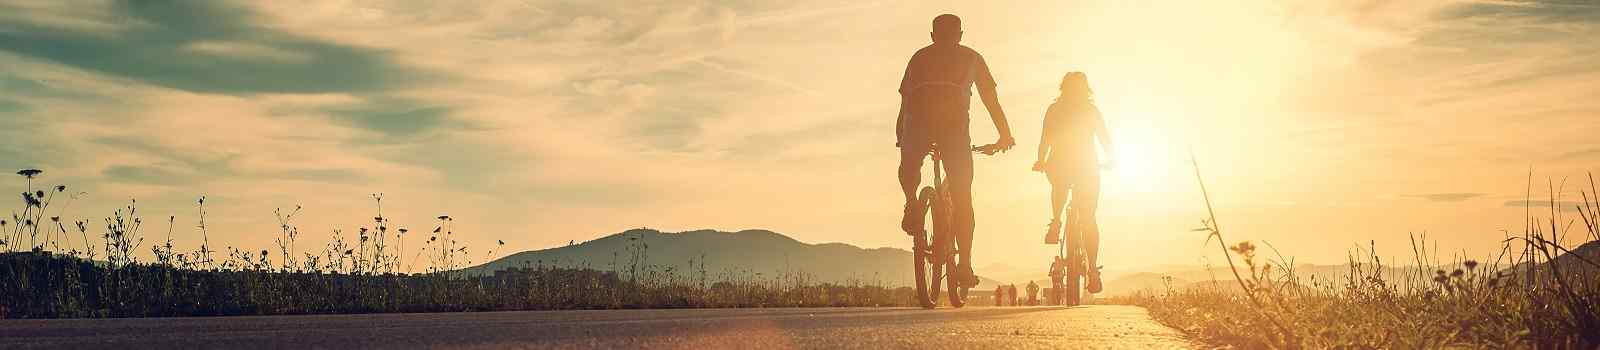 FUGGER-AUG-RO  Cyclists are on the sunset road  shutterstock 498444379